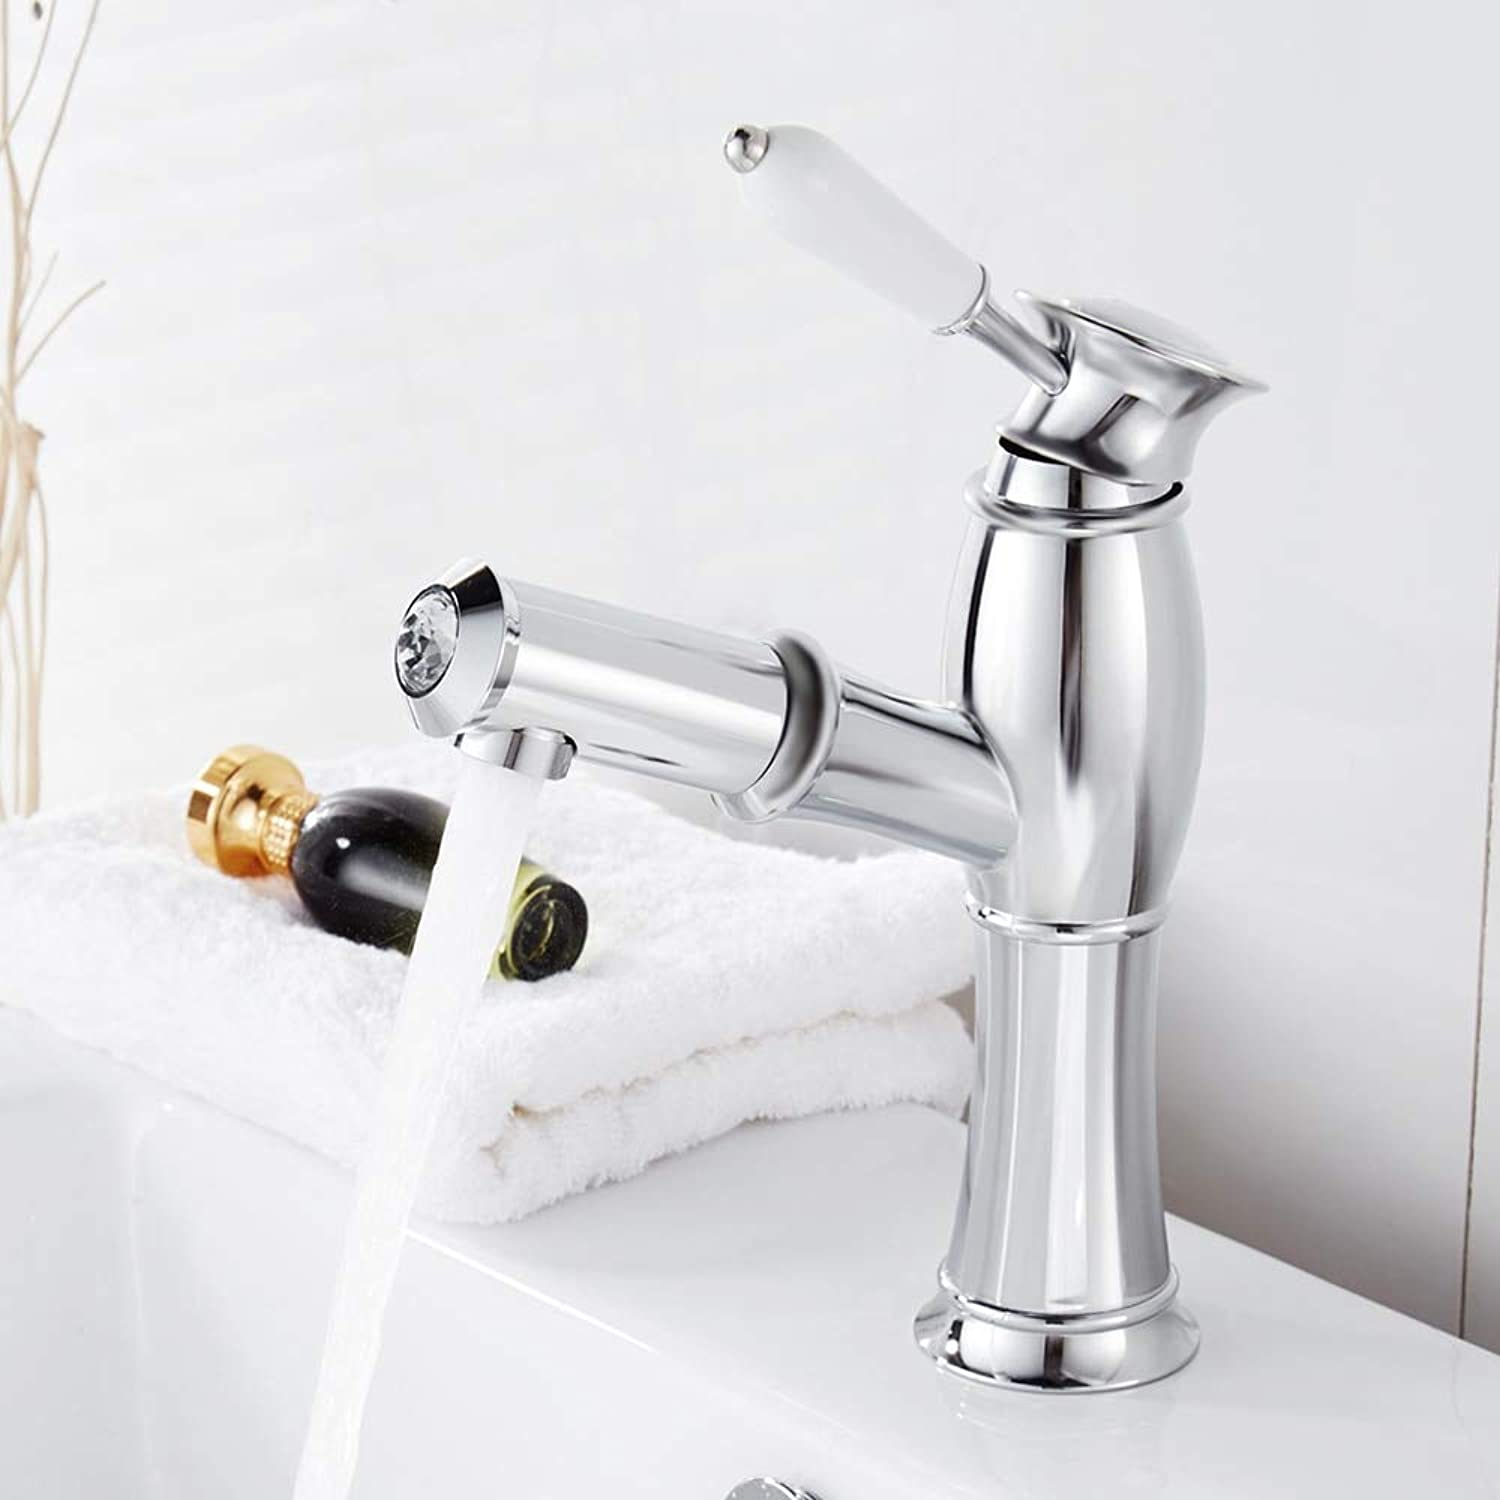 Ceramic Pull Out Bathroom Pool Sink Faucet Single Handle Hot and Cold Crane Container Sink Mixer Faucet